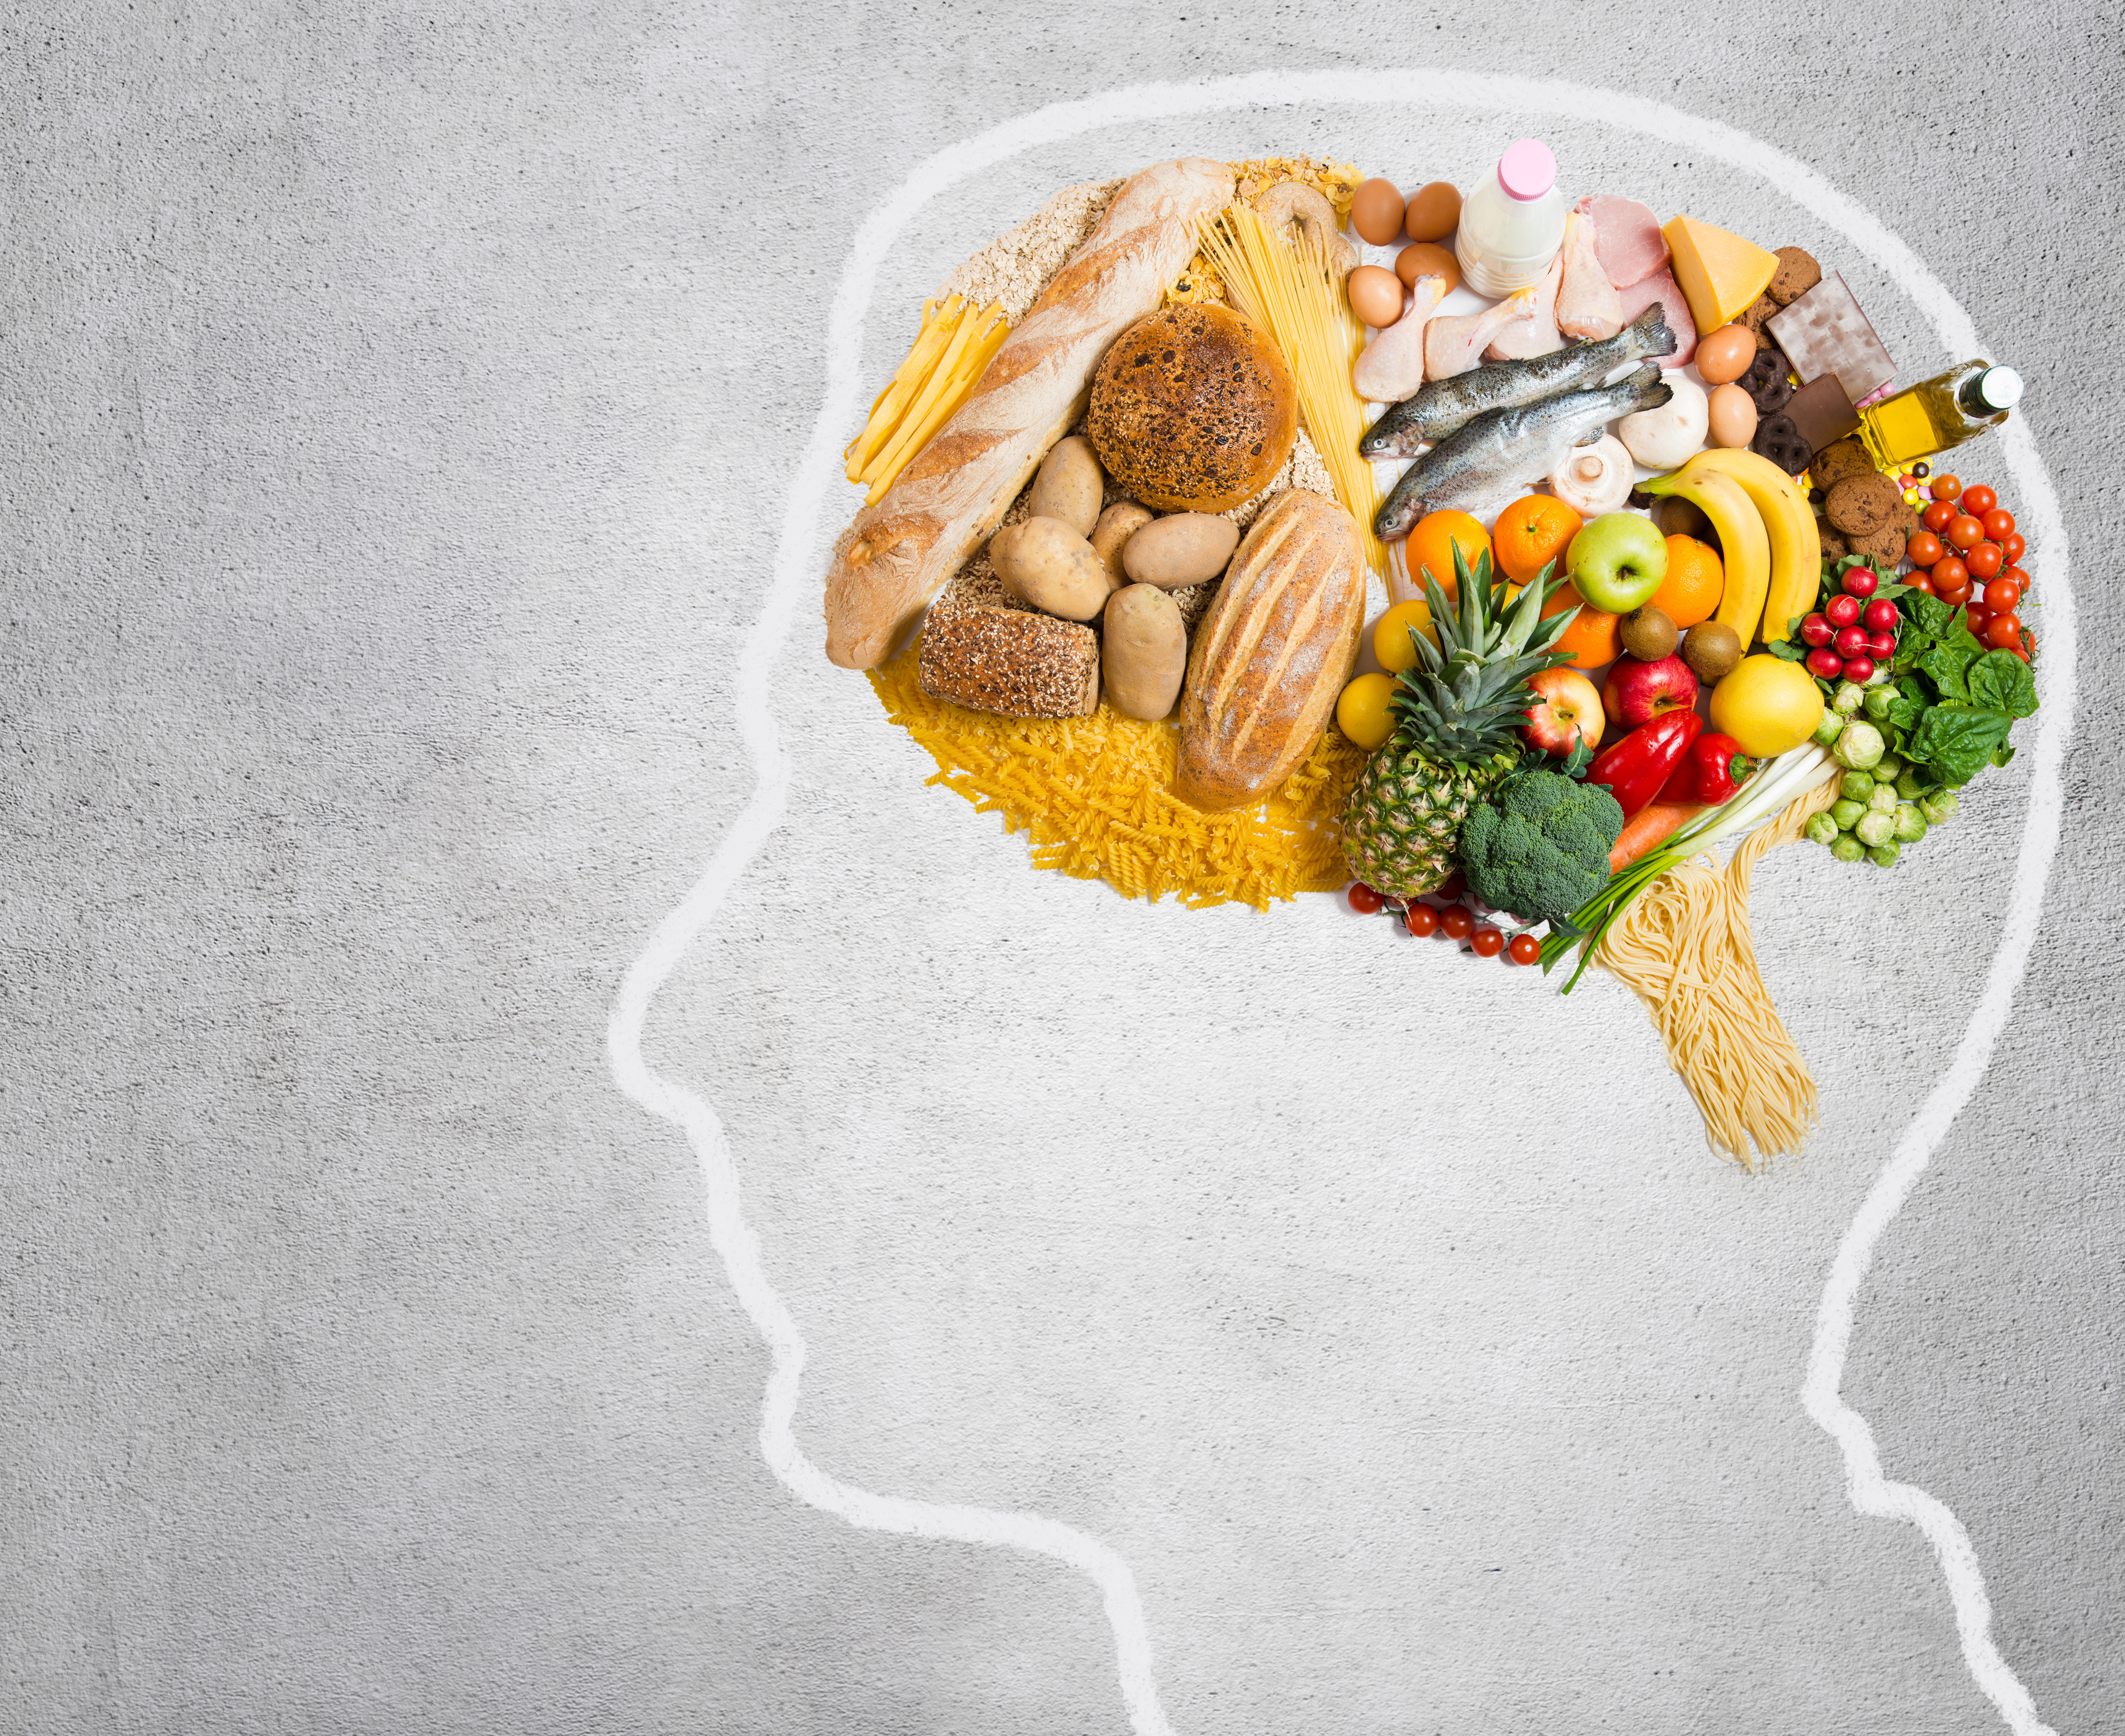 Brain pictorial composed with food